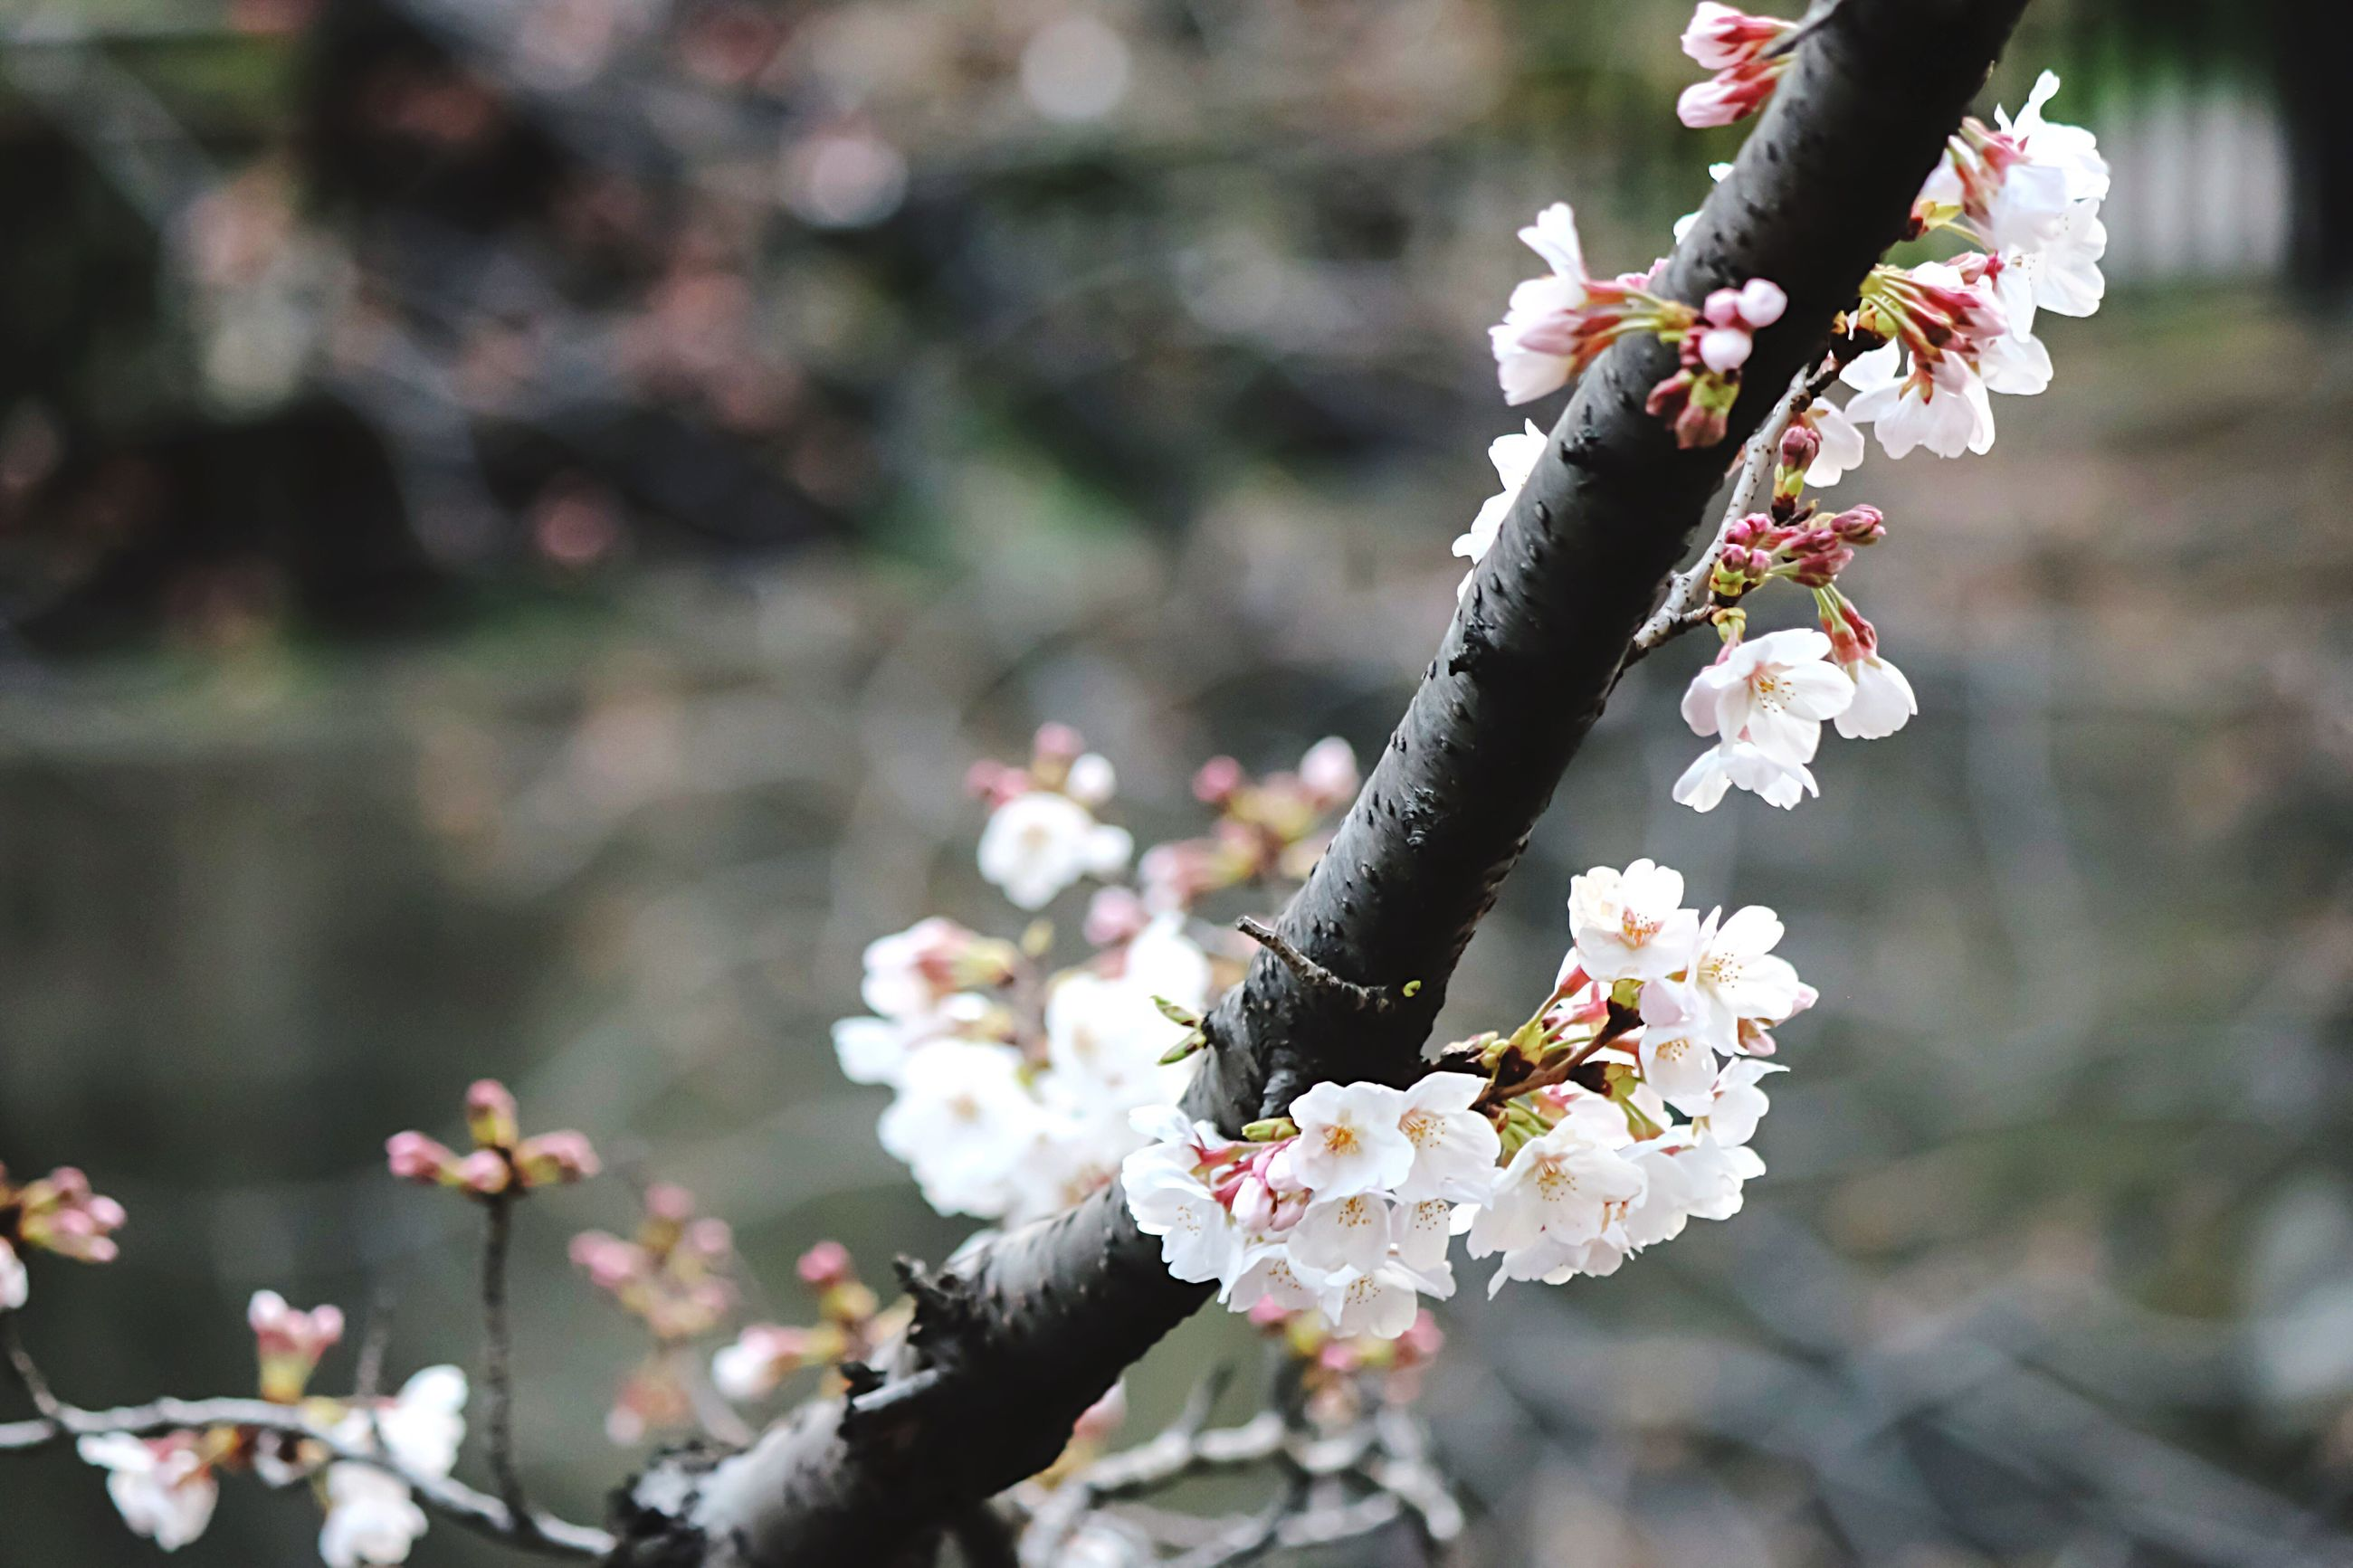 flower, focus on foreground, branch, tree, fragility, freshness, growth, nature, cherry blossom, beauty in nature, close-up, twig, cherry tree, white color, blossom, petal, springtime, insect, outdoors, day